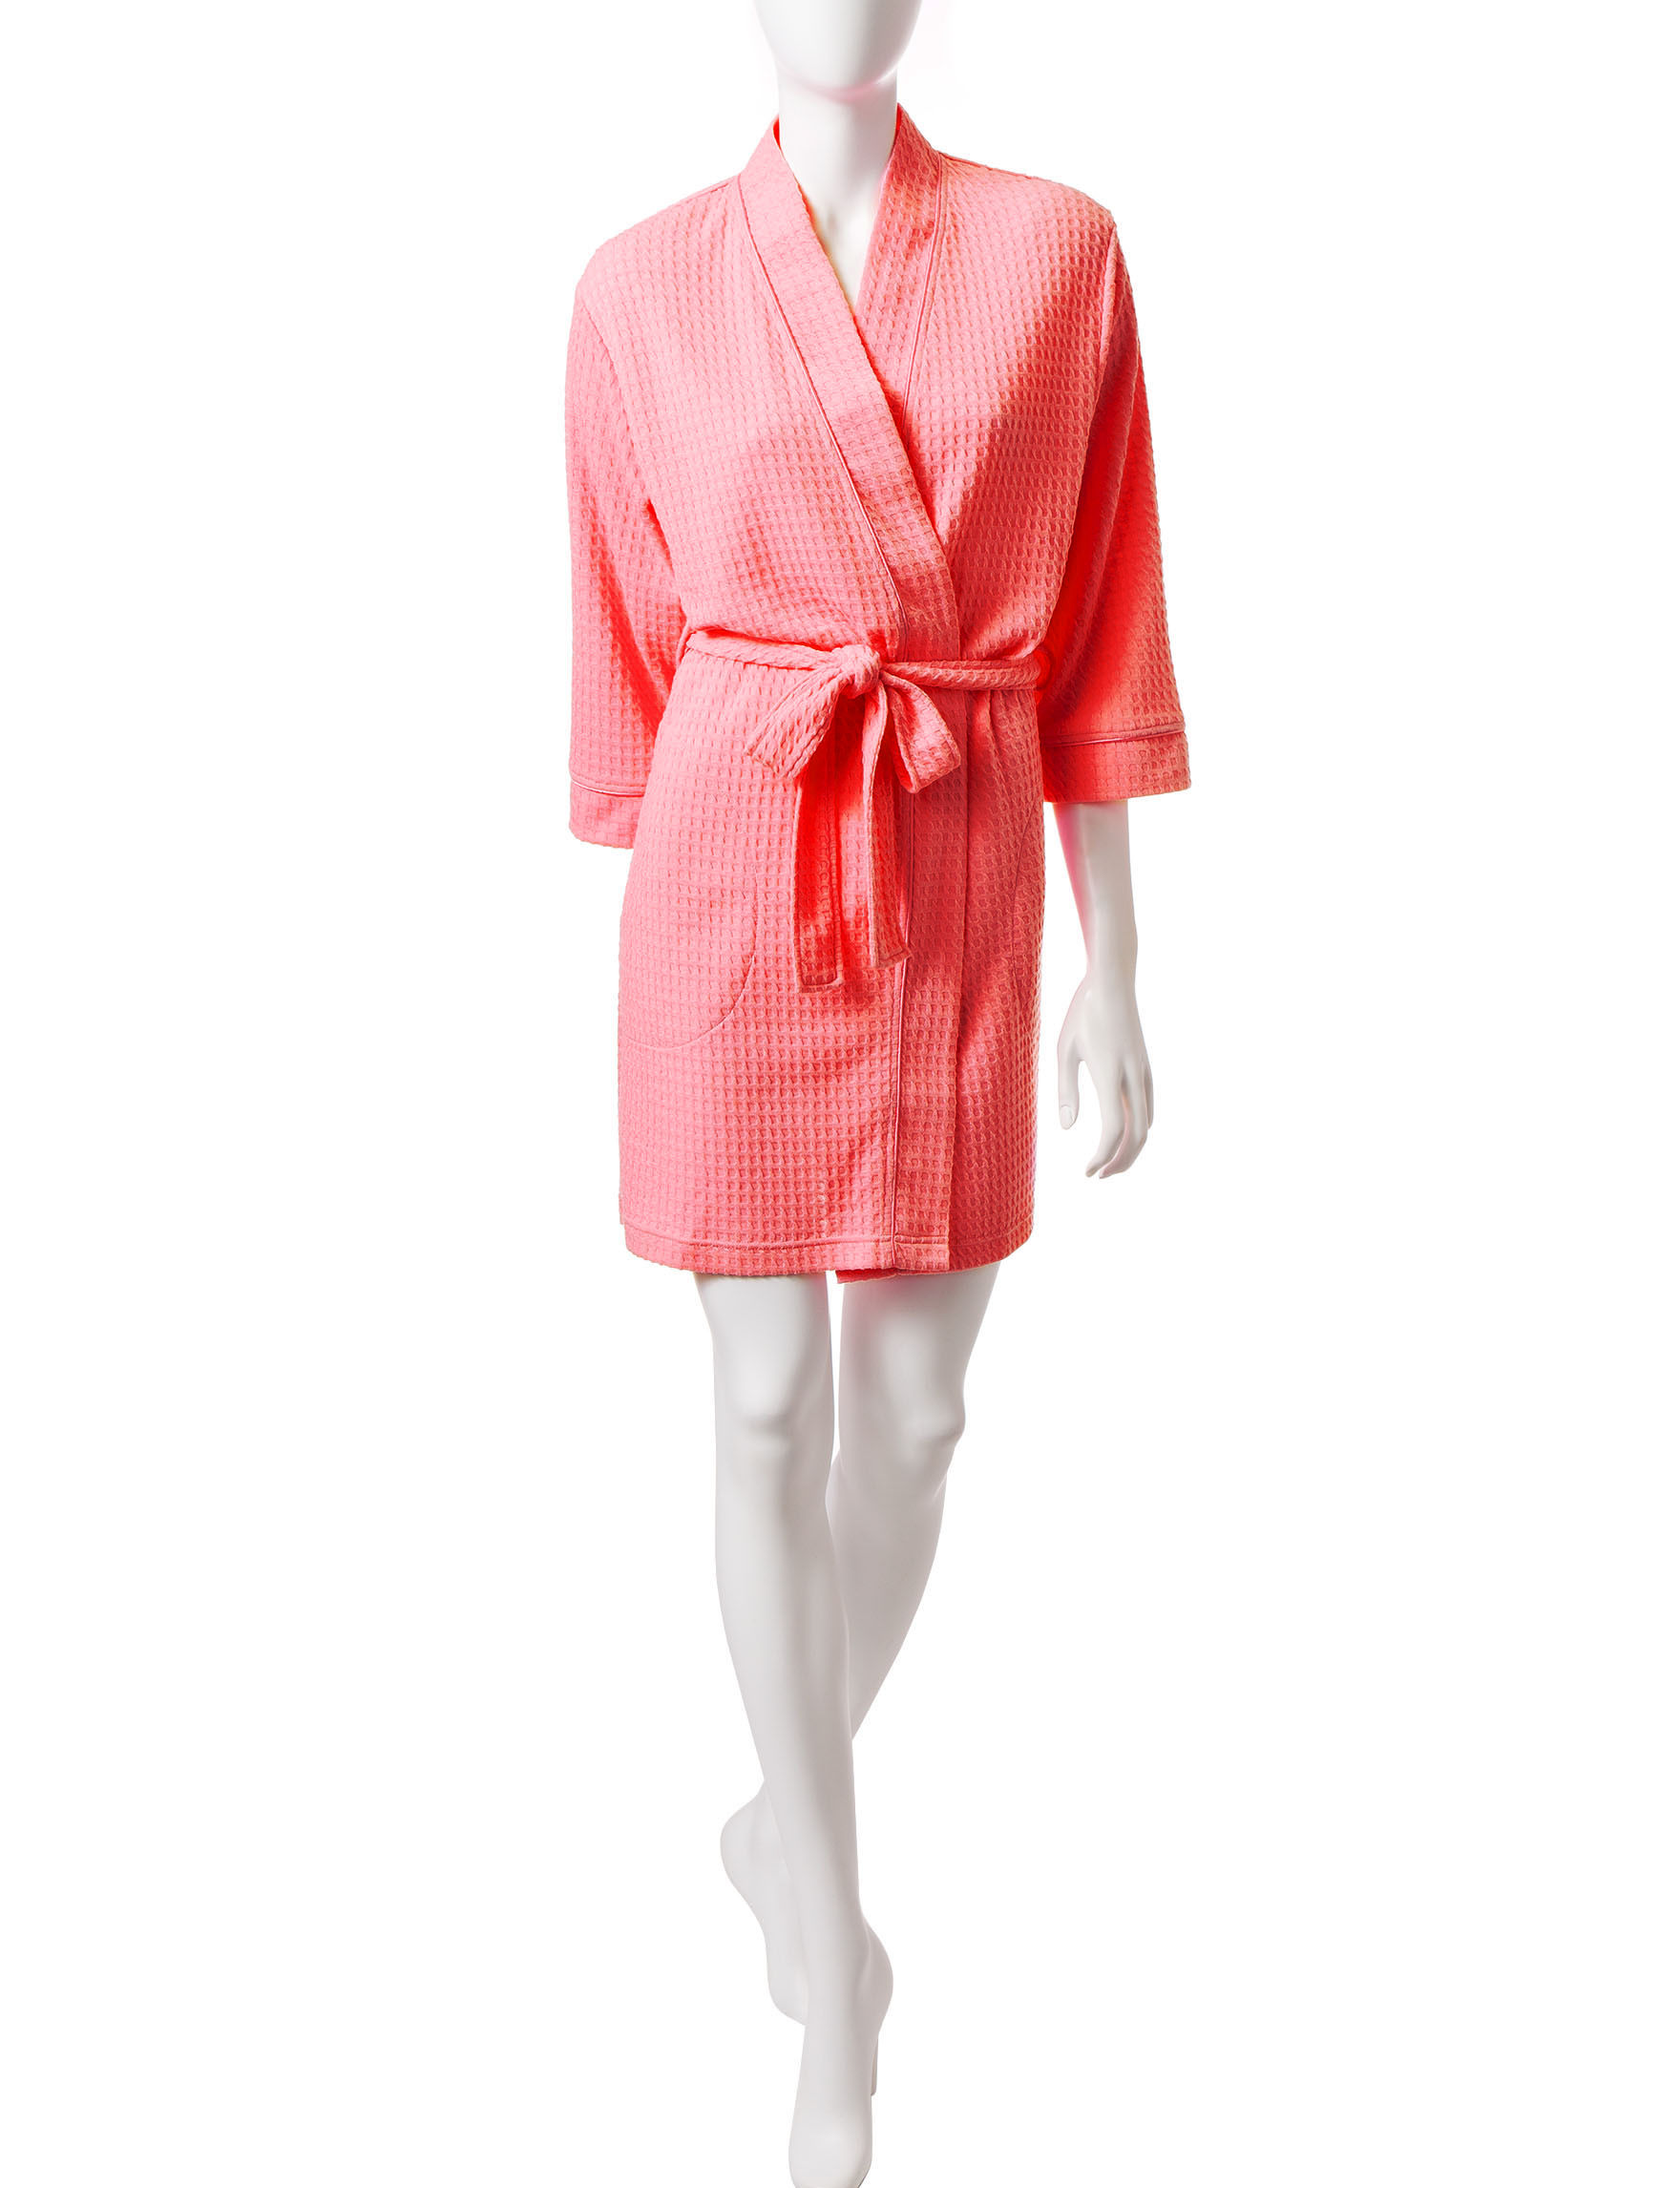 Jasmine Rose Coral Robes, Wraps & Dusters